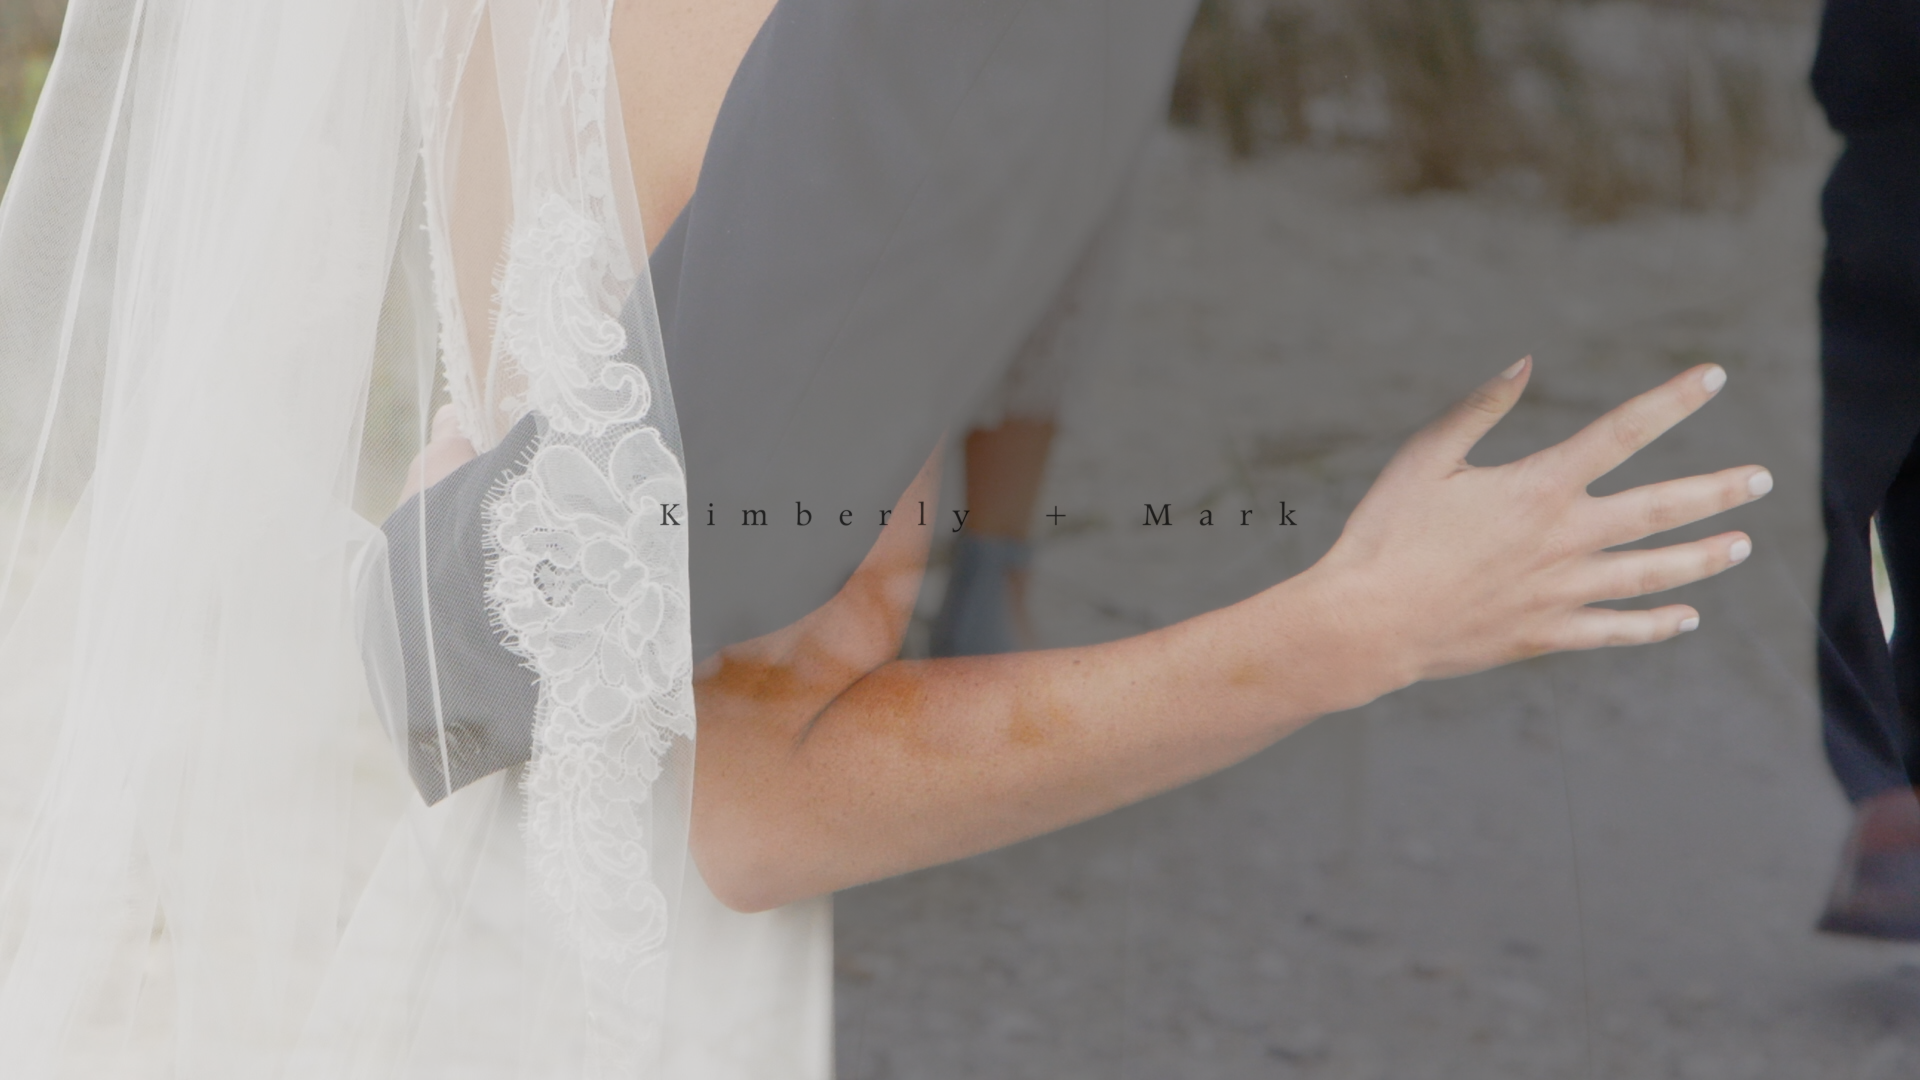 Kimberly + Mark | Hilton Head Island, South Carolina | Sea Pines Resort